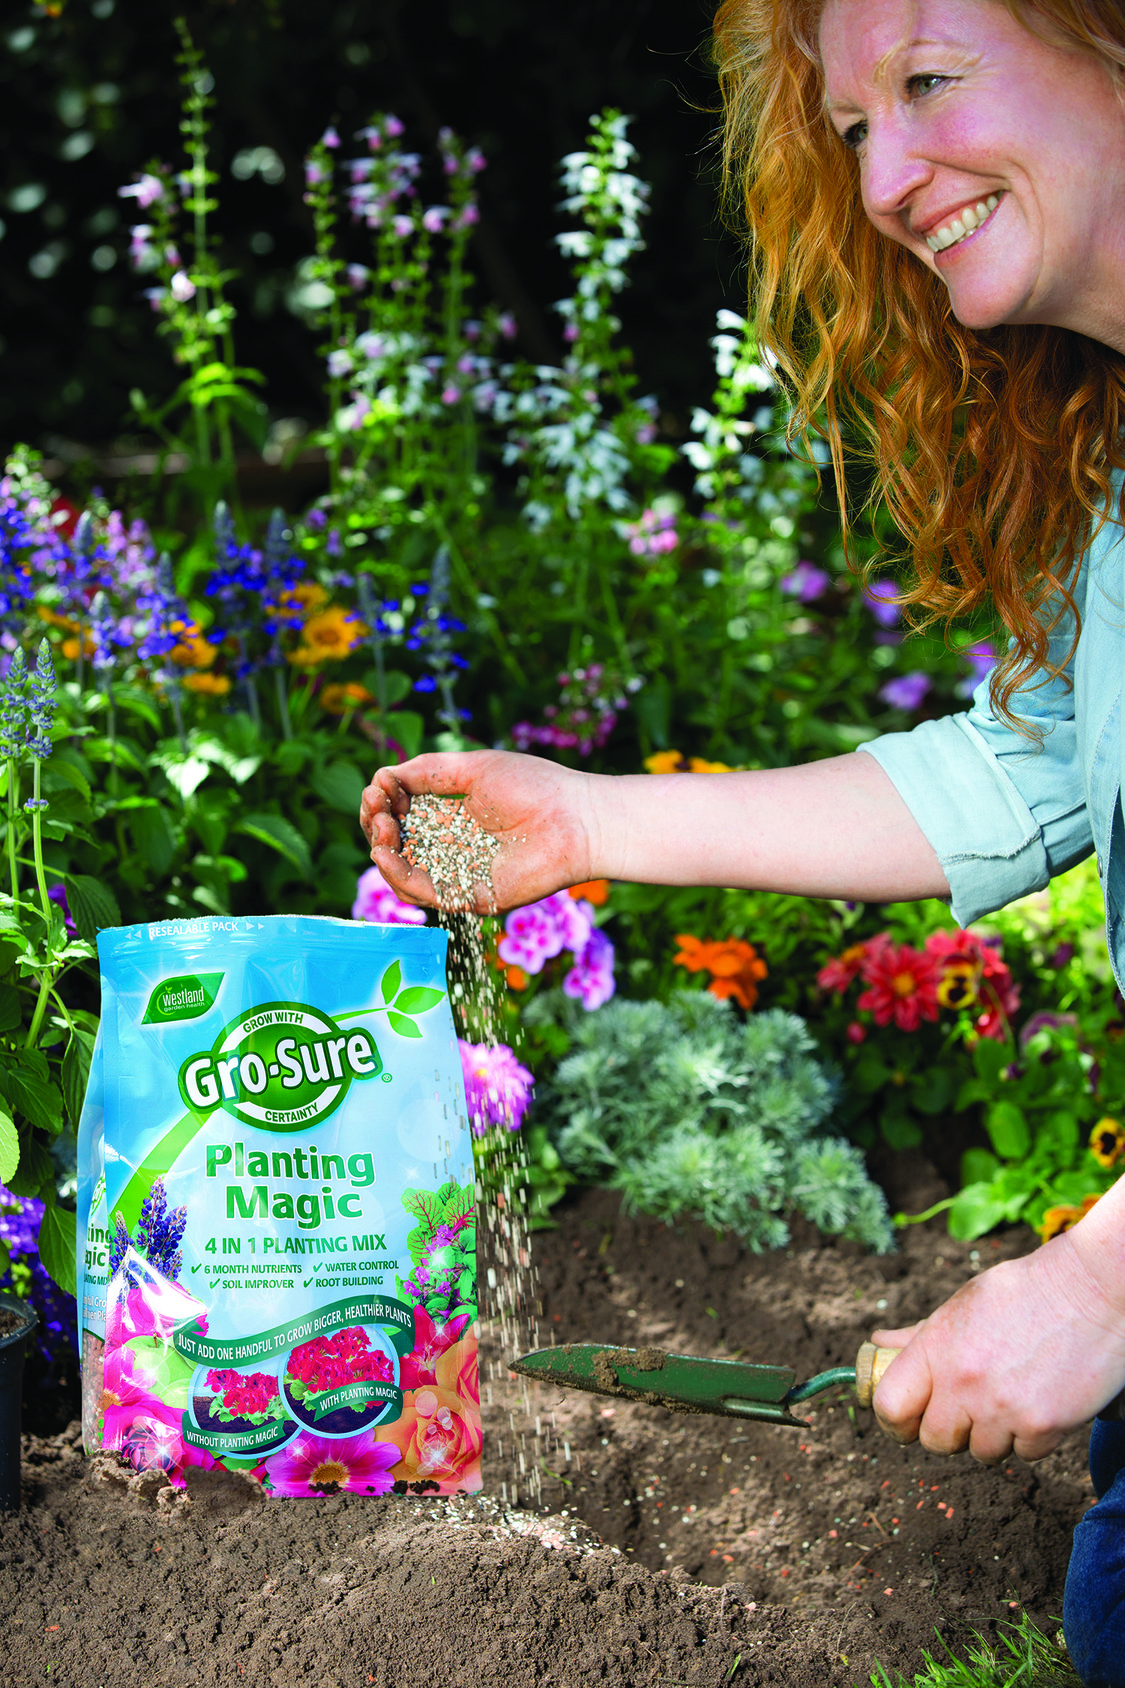 Garden Centre Update Charlie Dimmock To Appear At